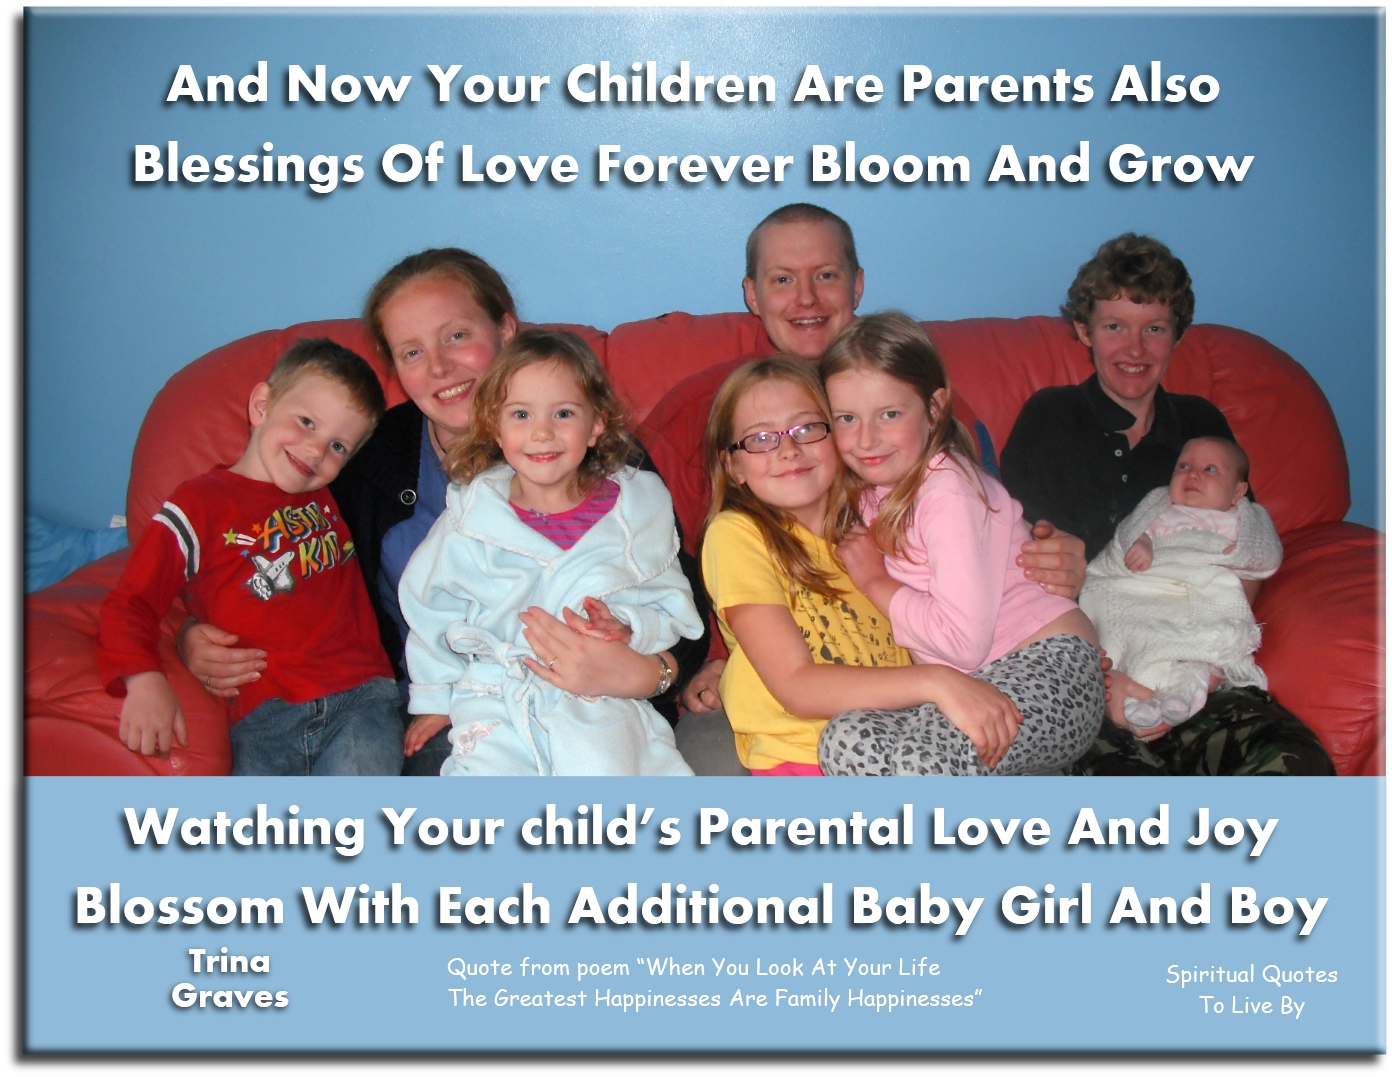 And now your children are parents also, blessings of love forever bloom and grow, watching your child's parental love and joy, blossom with..  - Trina Graves of Spiritual Quotes To Live By